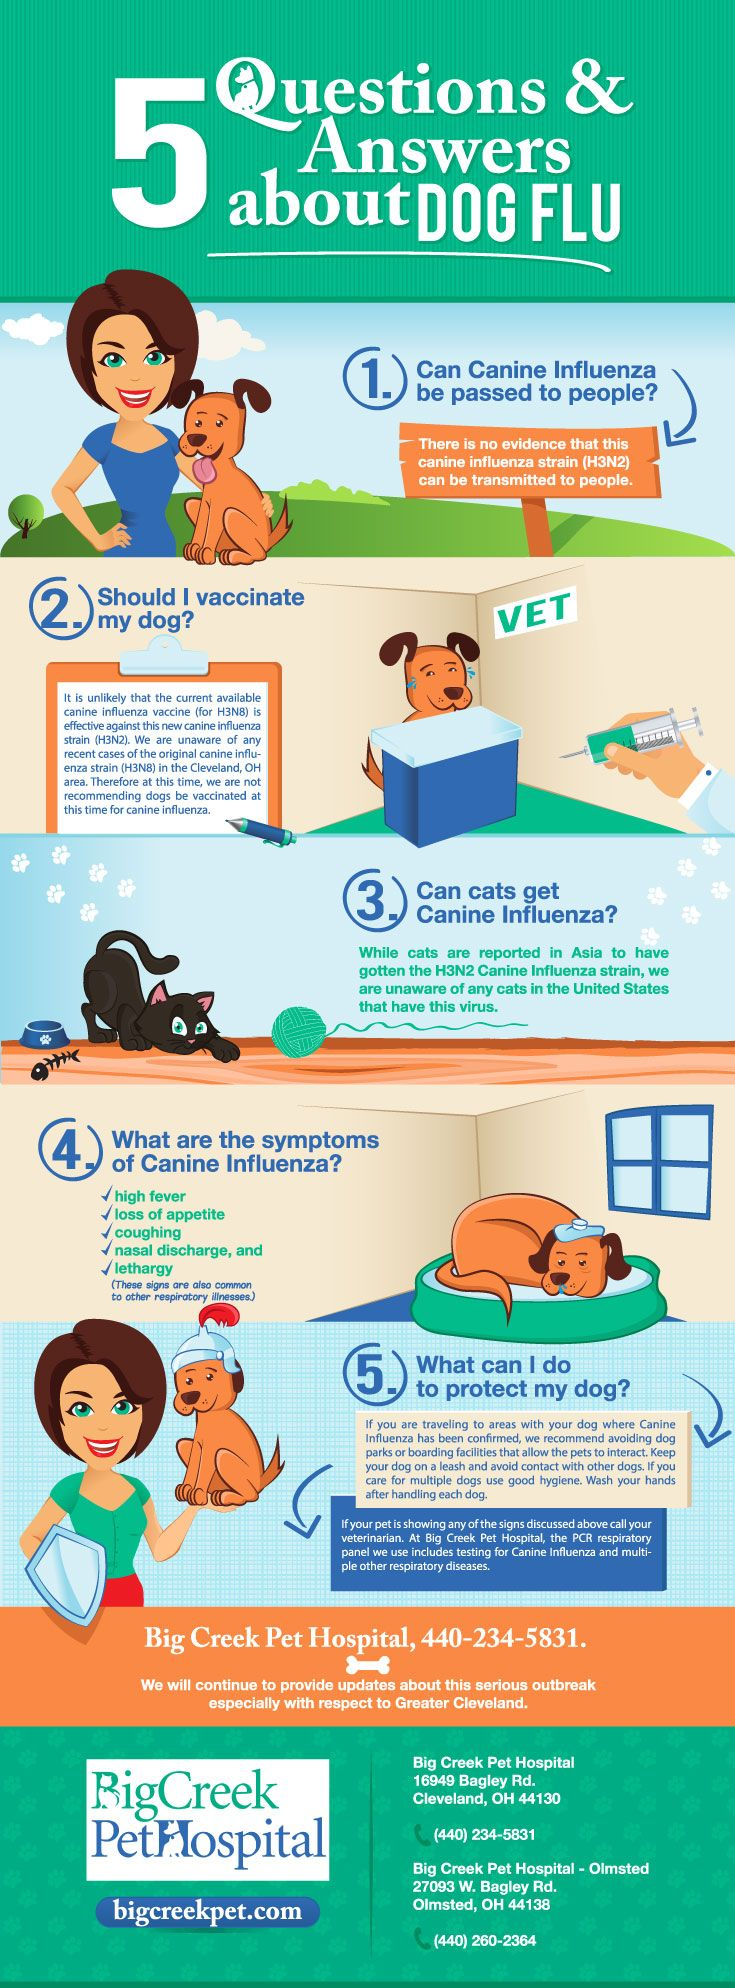 What should you be looking for regarding Dog Flu? http://www.bigcreekpet.com/five-questions-and-answers-about-canine-influenza-in-cleveland-oh/?utm_source=pinterest&utm_medium=social&utm_campaign=dogflu&utm_term=organic&utm_content=dog-flu-pin